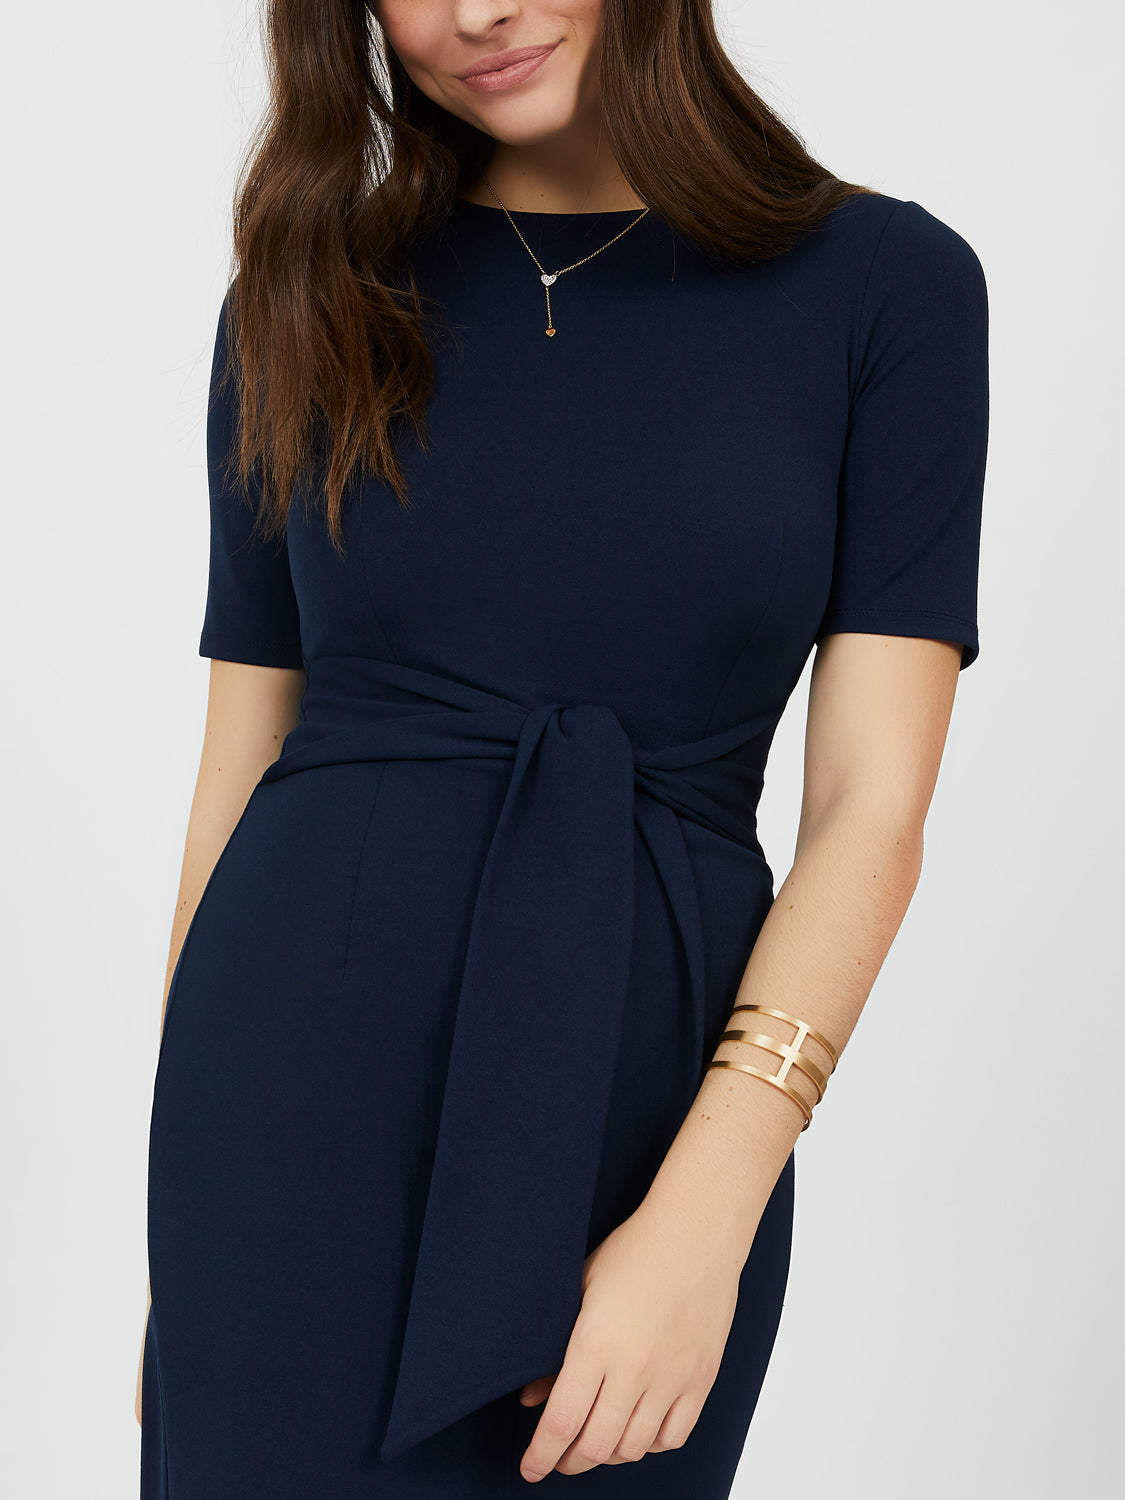 Fitted Sash Tie Sheath Dress